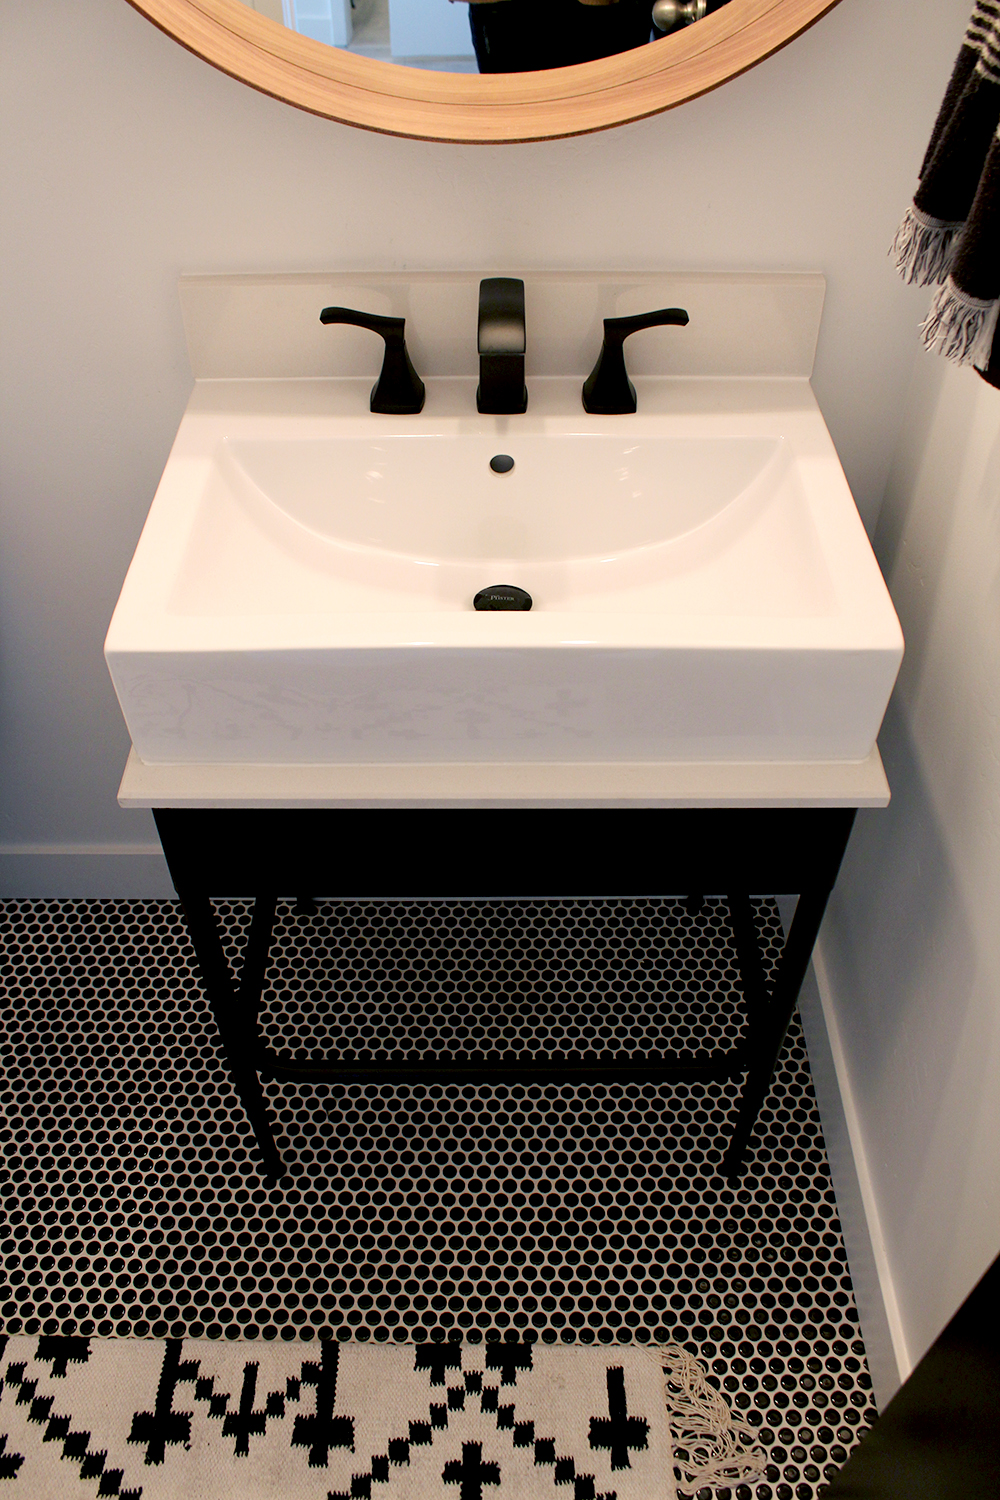 Before & After Bathroom: Why Black Modern Hardware Can Make All The ...